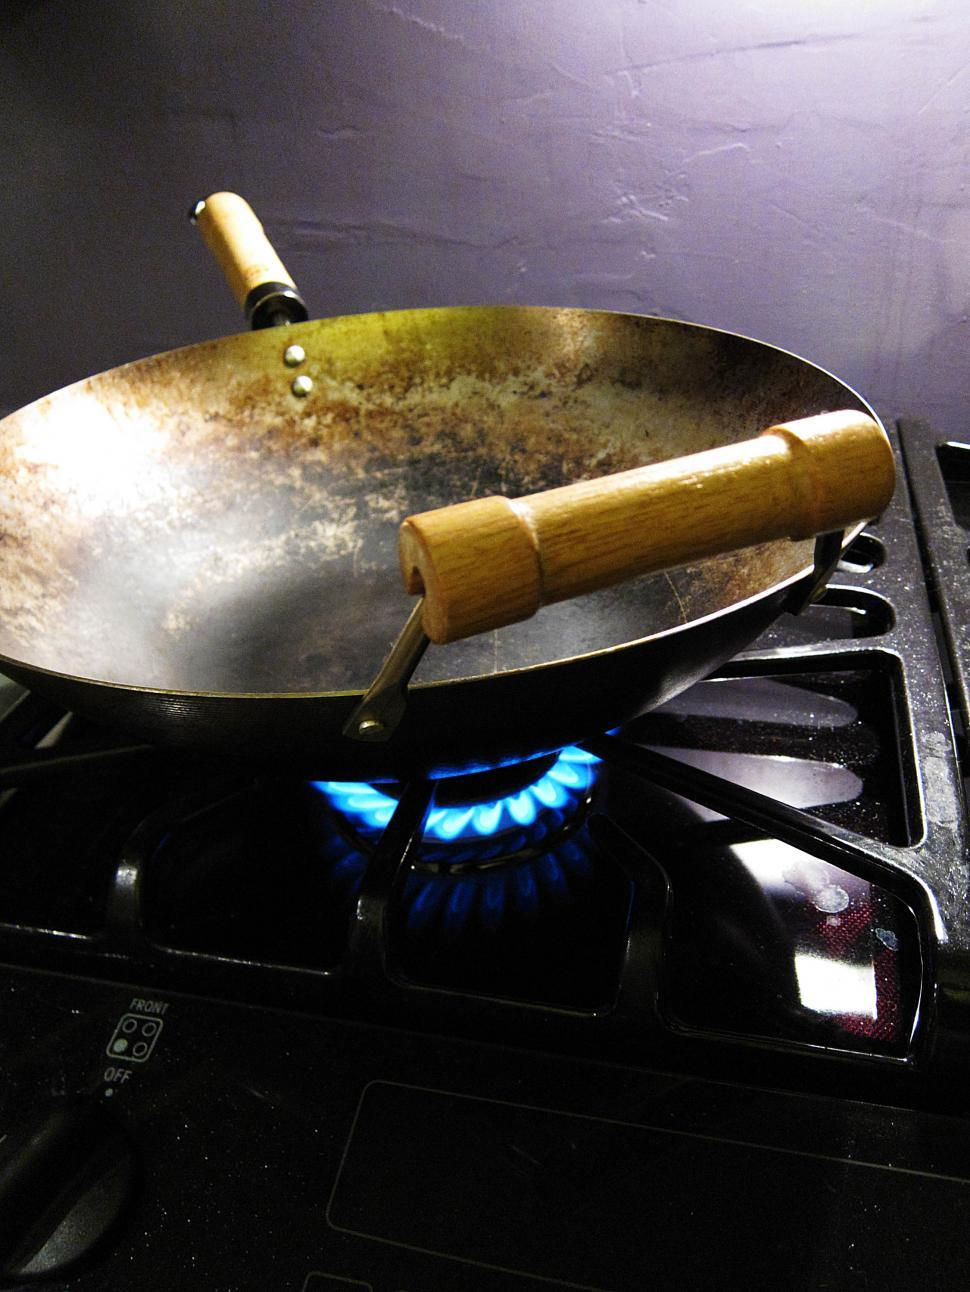 Download Free Stock HD Photo of Hot Wok Online